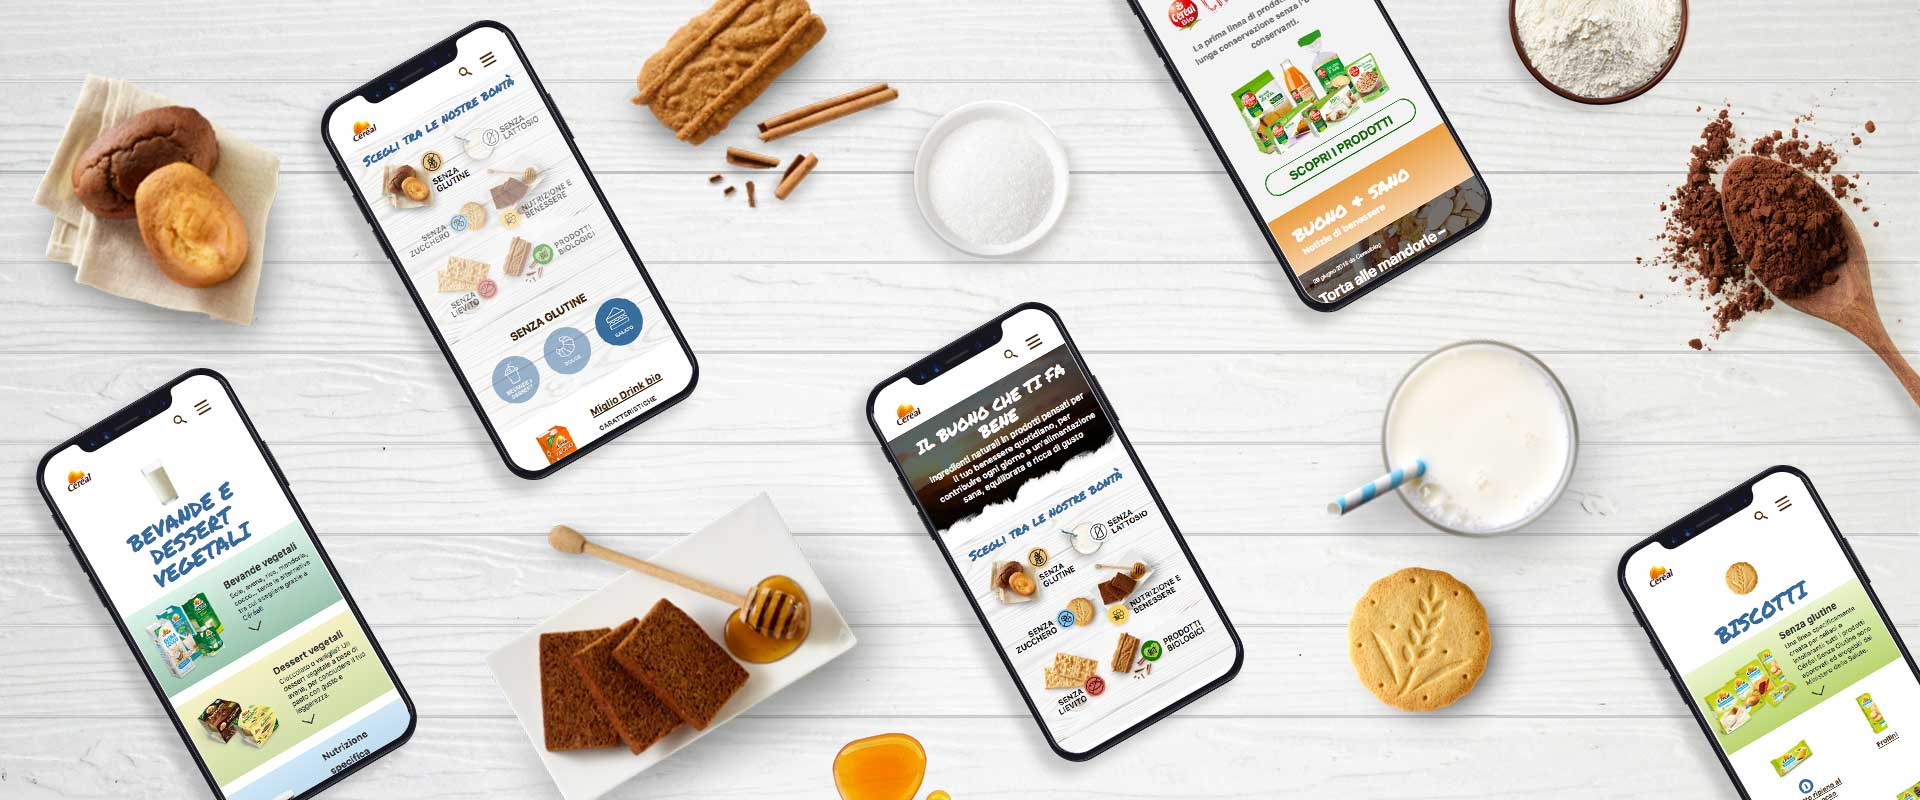 mobile design per il corporate website di Cereal